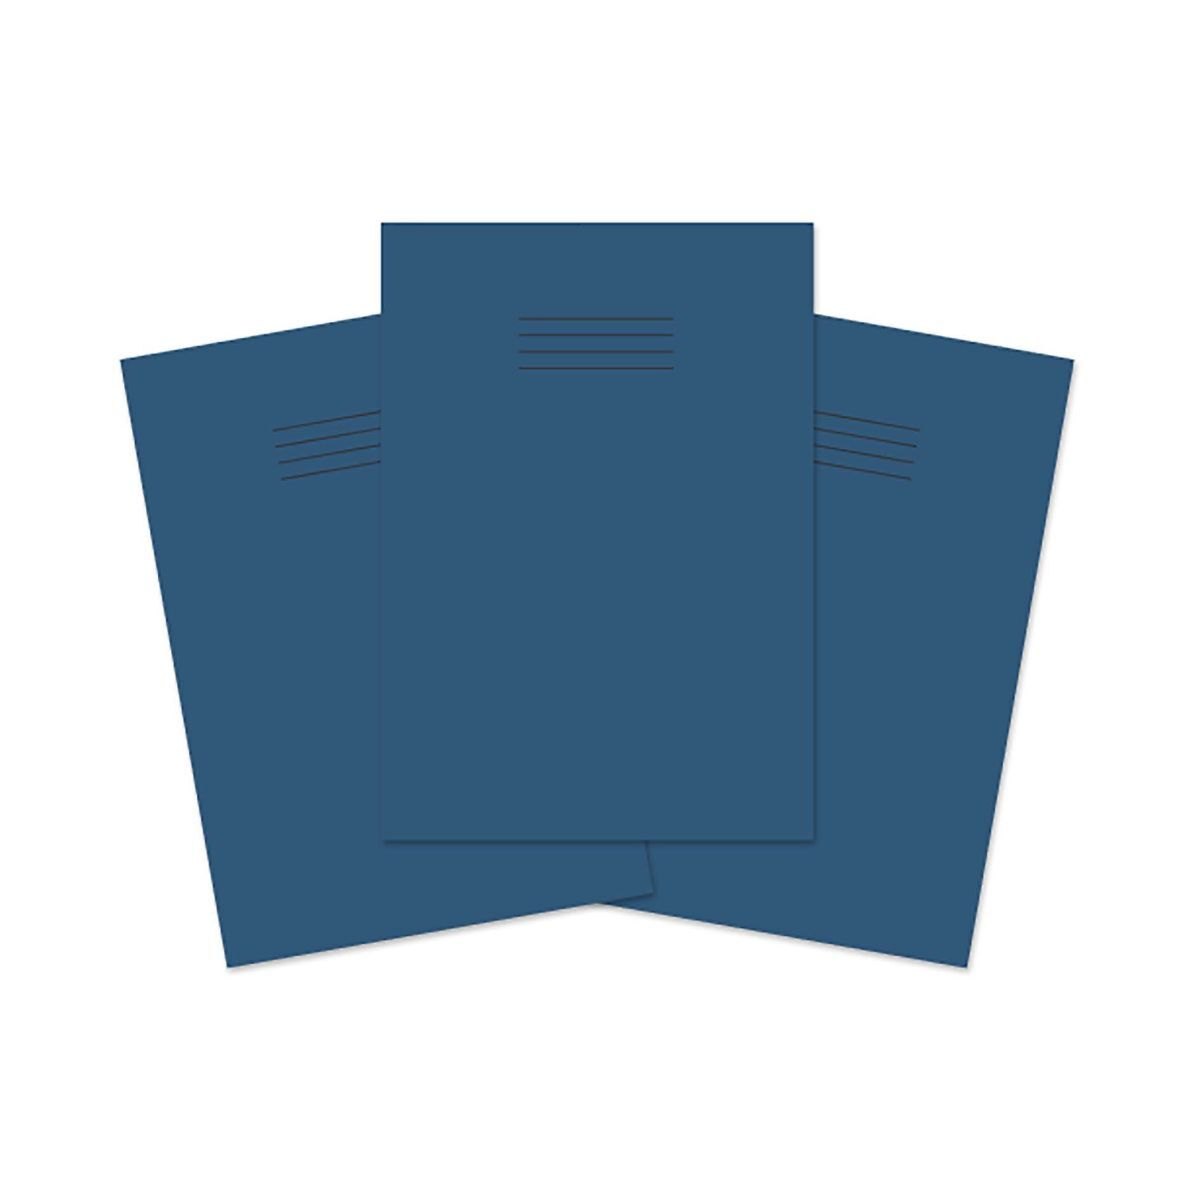 Exercise Book A4 80 page 8mm Ruled and Margin Pack of 50 Dark Blue